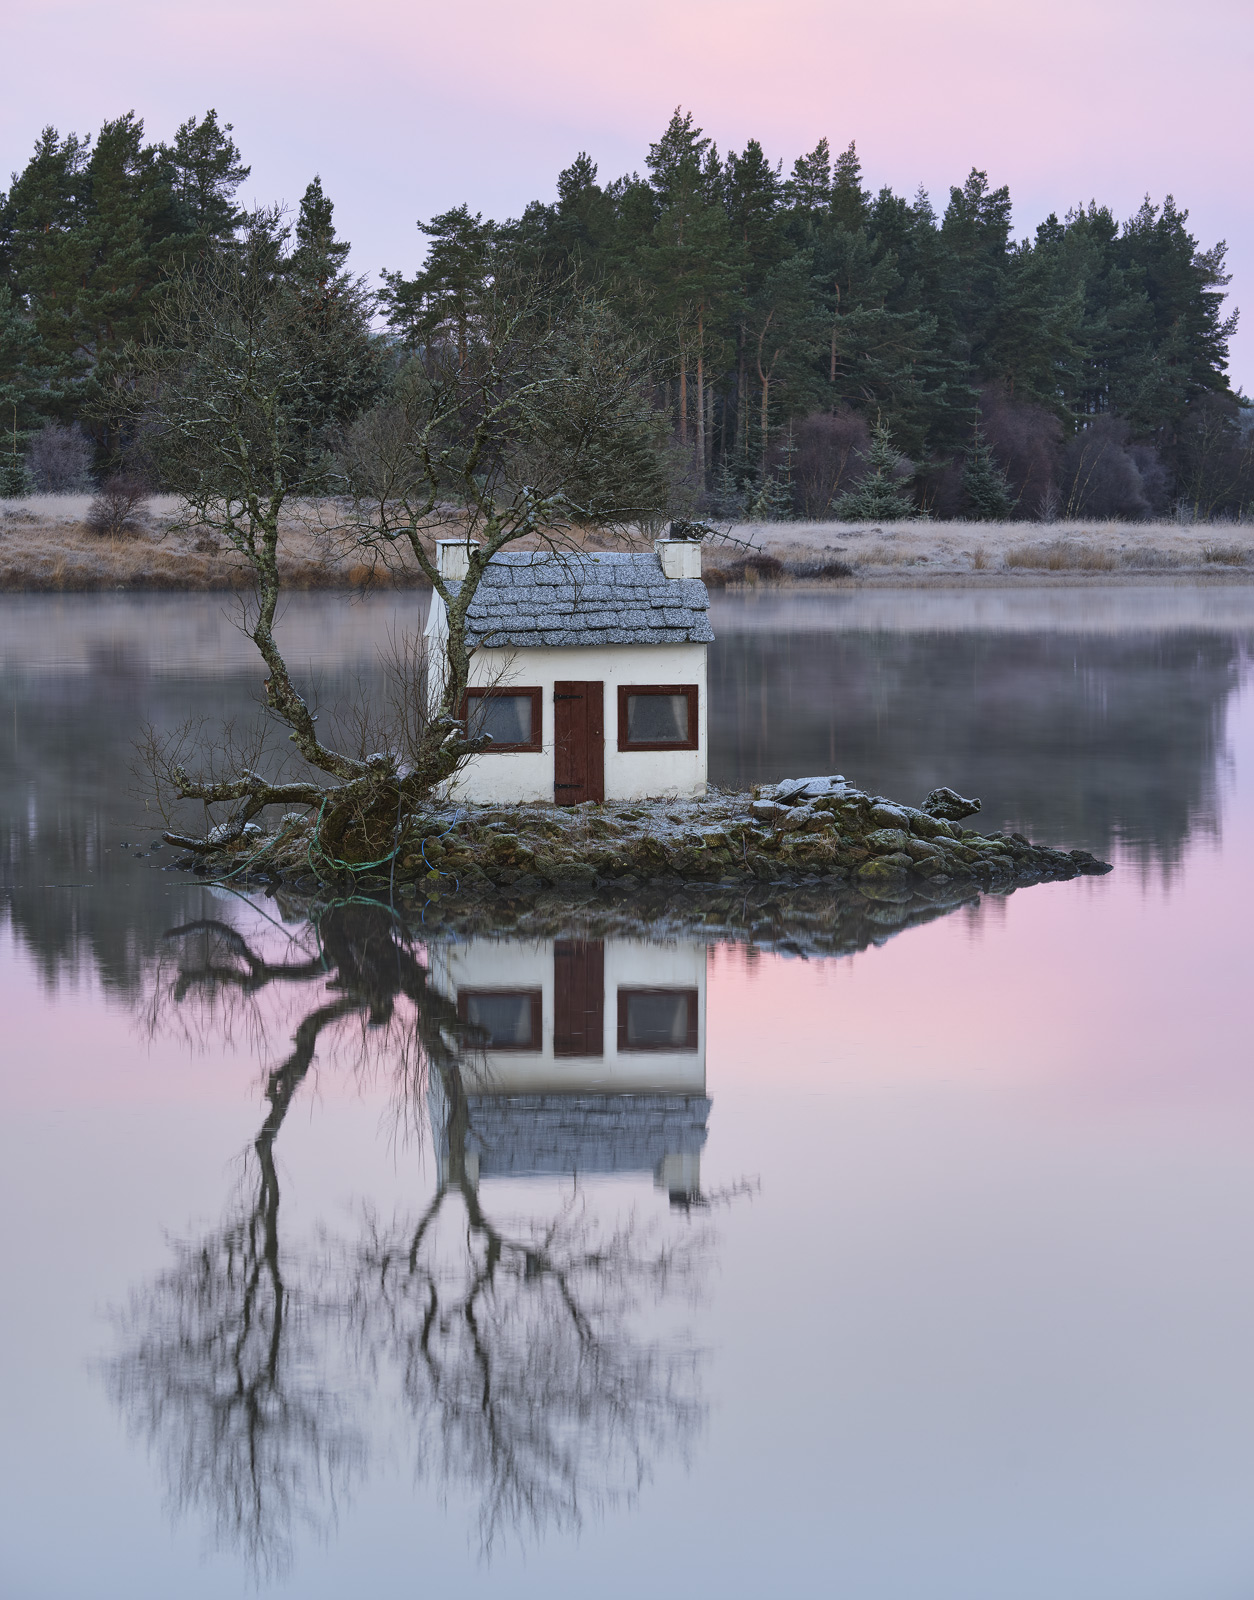 Lairg Folly Winter, Lairg, Sutherland, Scotland, bizarre, dolls house, island, reflection, frosted, chimney, window ligh, photo